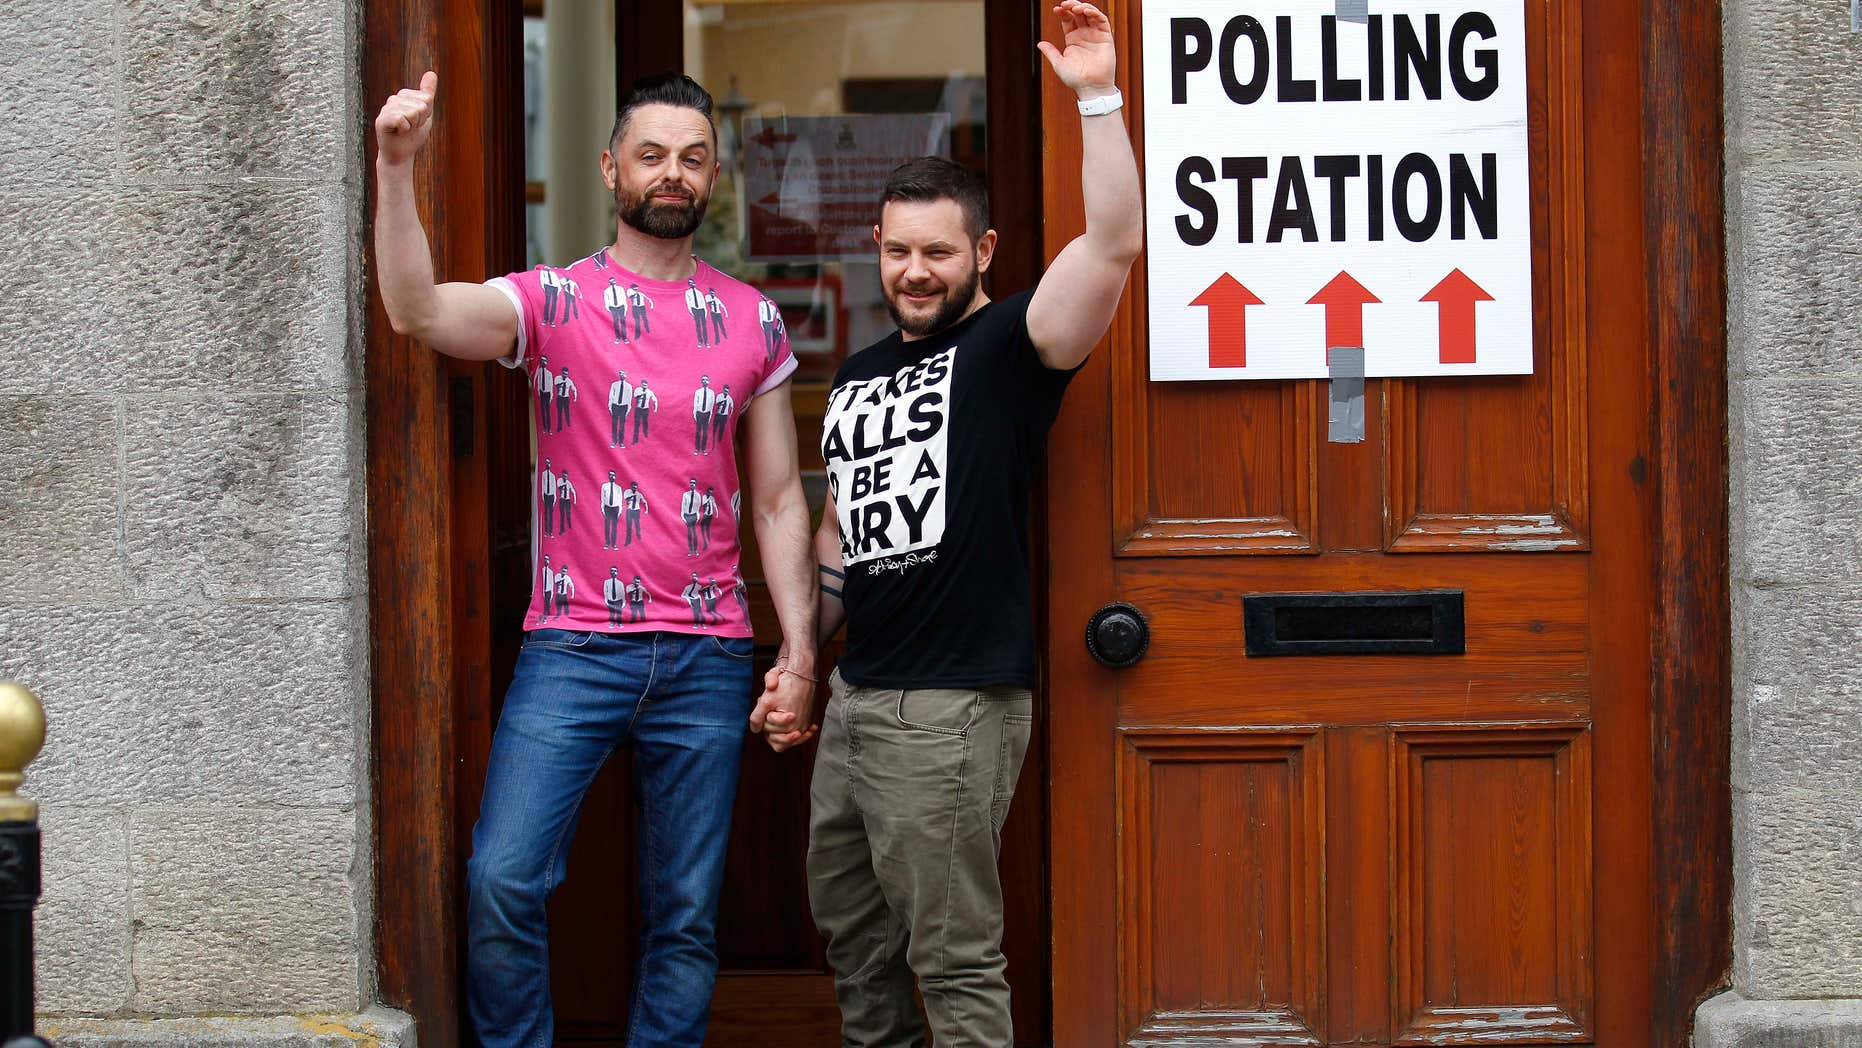 May 22, 2015: Partners Adrian, left and Shane, arrive to cast their vote at a polling station in Drogheda, Ireland.